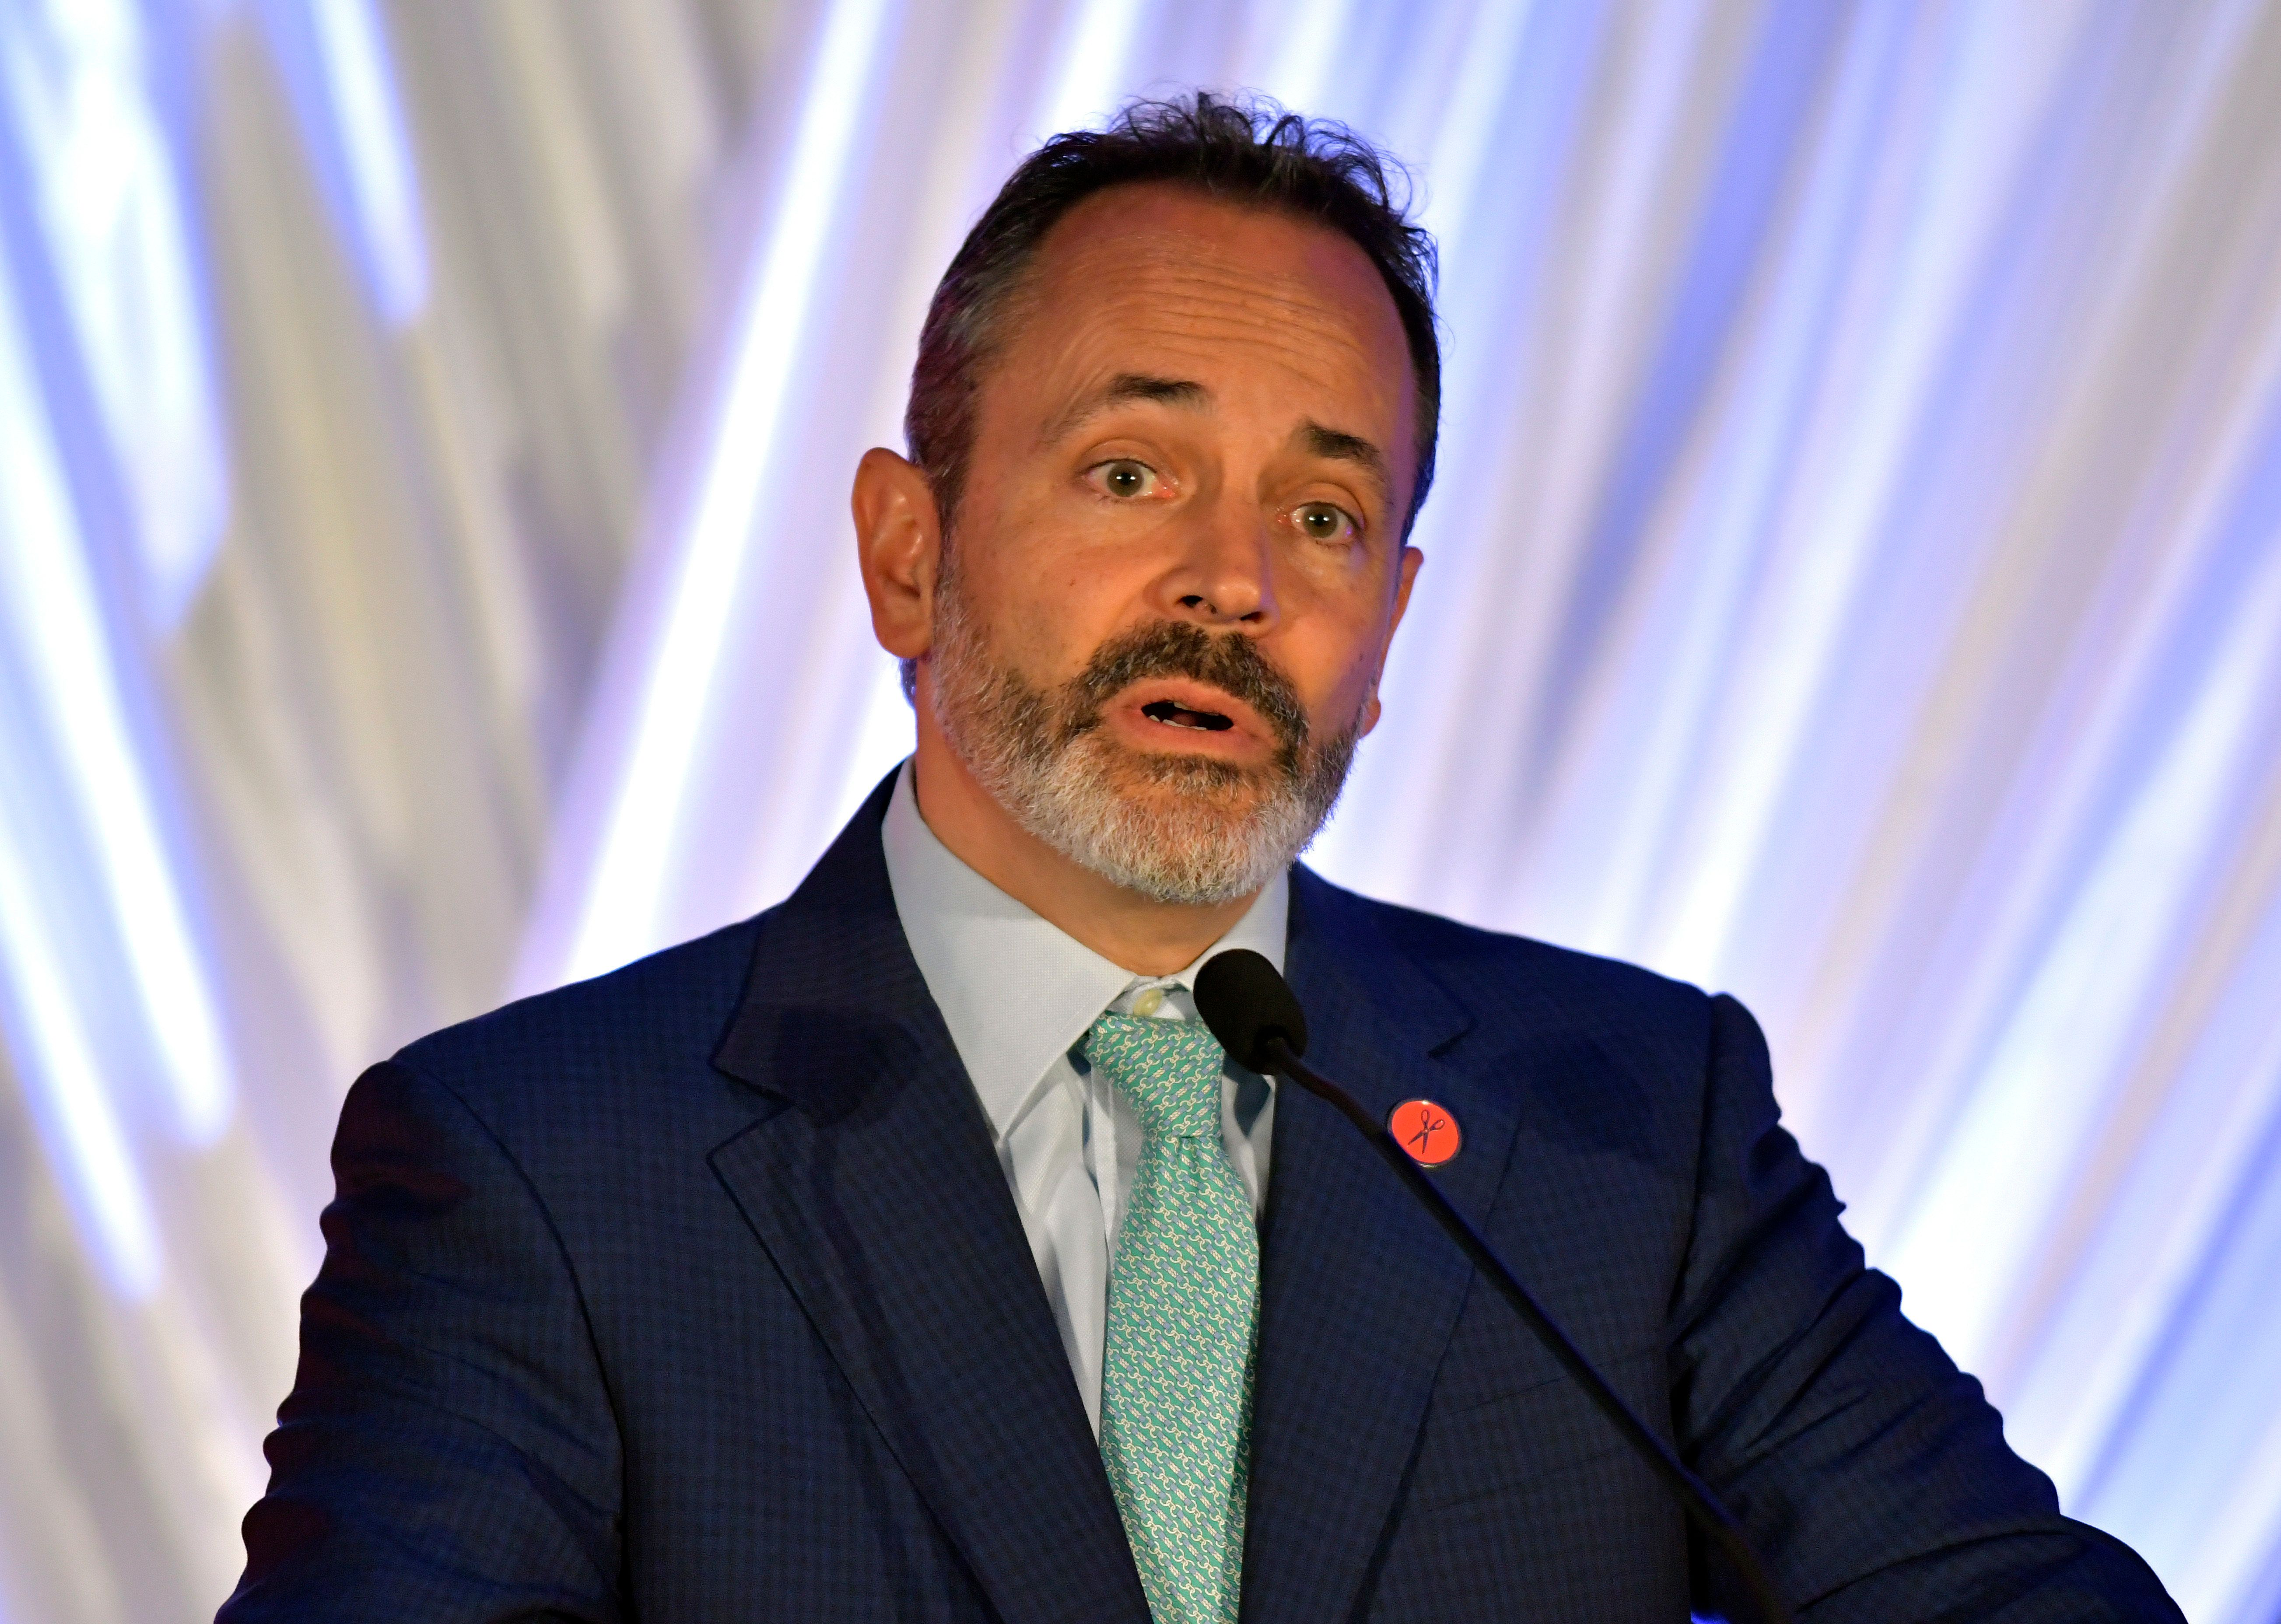 Kentucky Gov. Matt Bevin (R) has virtually unlimited power in choosing whether to restore voting rights to former felons.